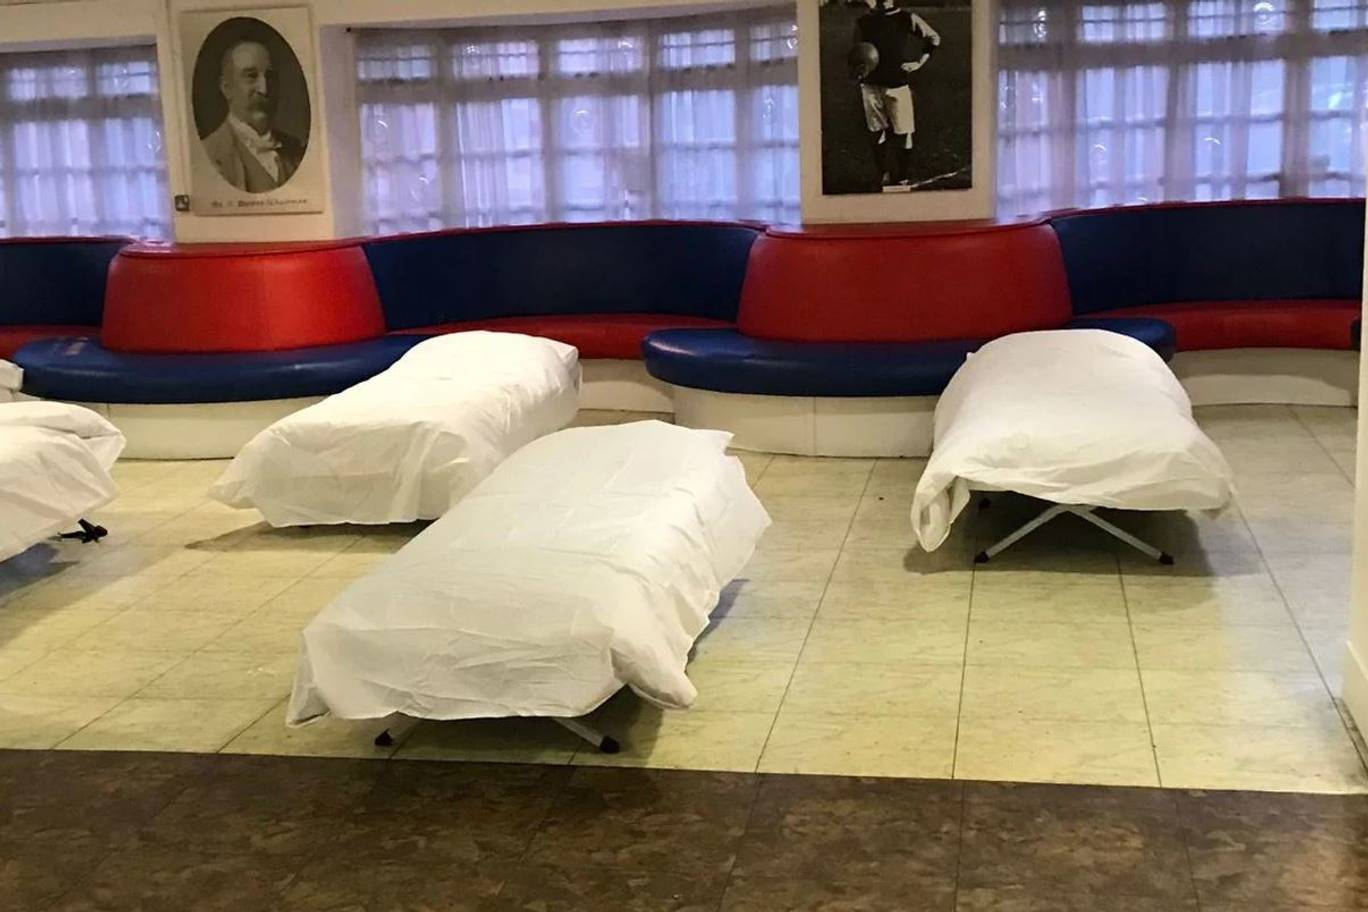 The beds at Selhurst Park. Image: Crystal Palace/Croydon Council